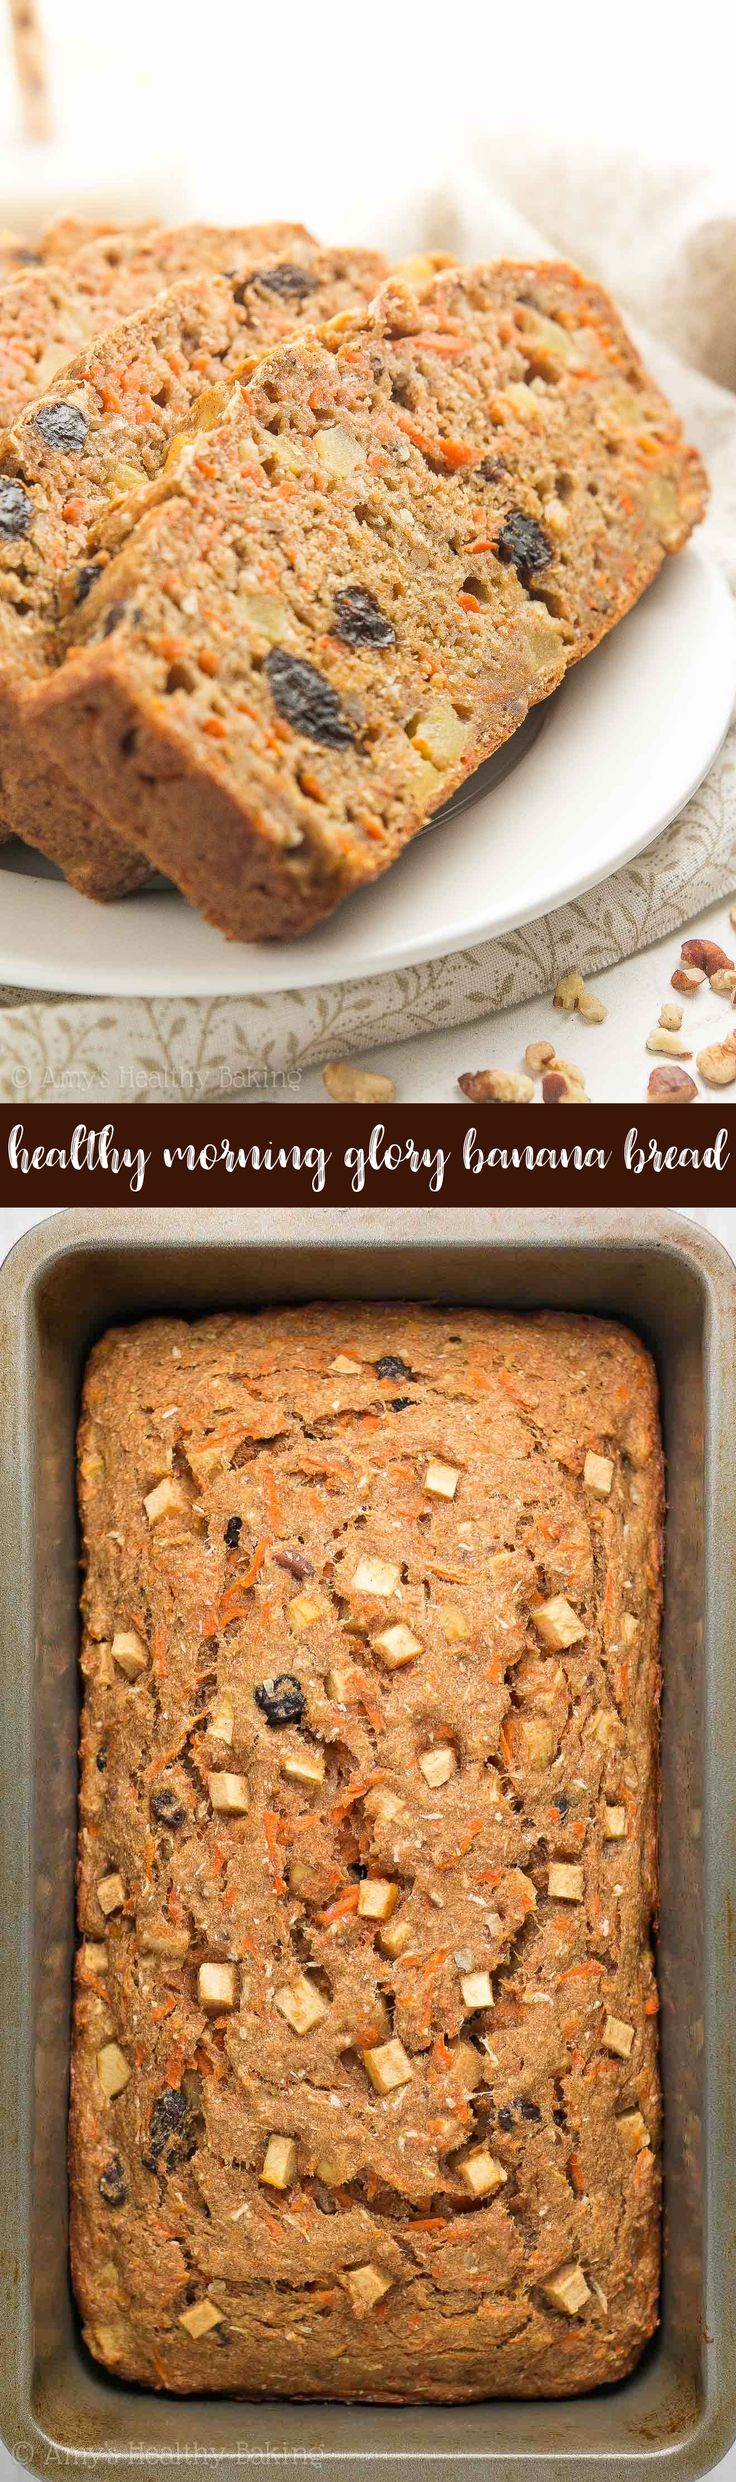 {HEALTHY!} Morning Glory Banana Bread -- only 135 calories! Naturally sweetened, really tender & so easy to make! It's perfect for quick on-the-go breakfasts & snacks. Completely kid-approved too! #healthy #breakfast #recipe #cleaneating